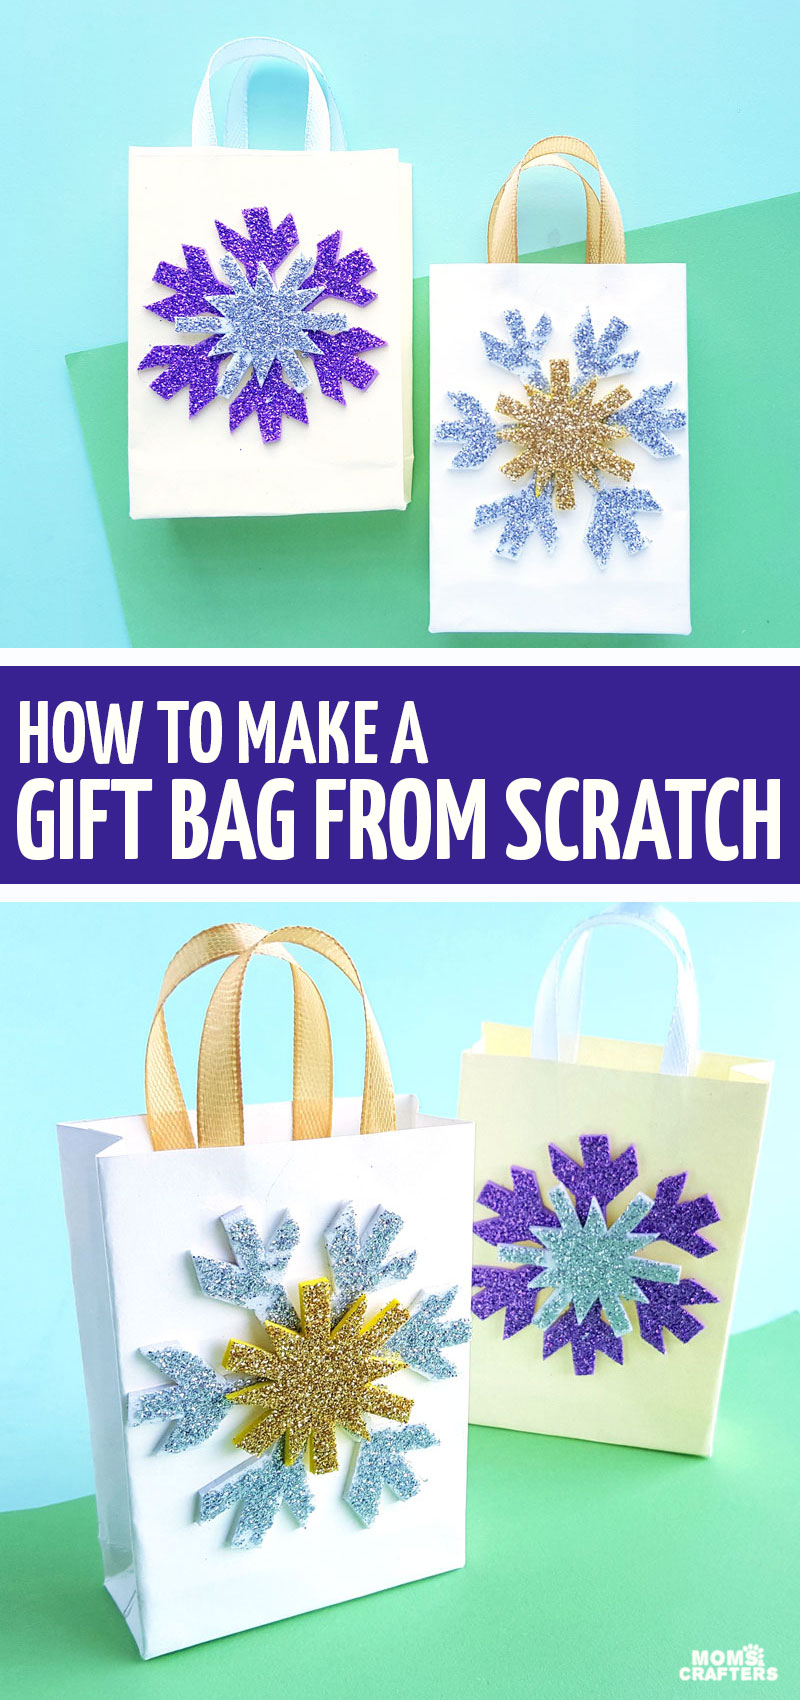 Click to learn how to make a gift bag out of wrapping paper from scratch and to learn how to create this DIY Frozen inspired snowflake gift bag!